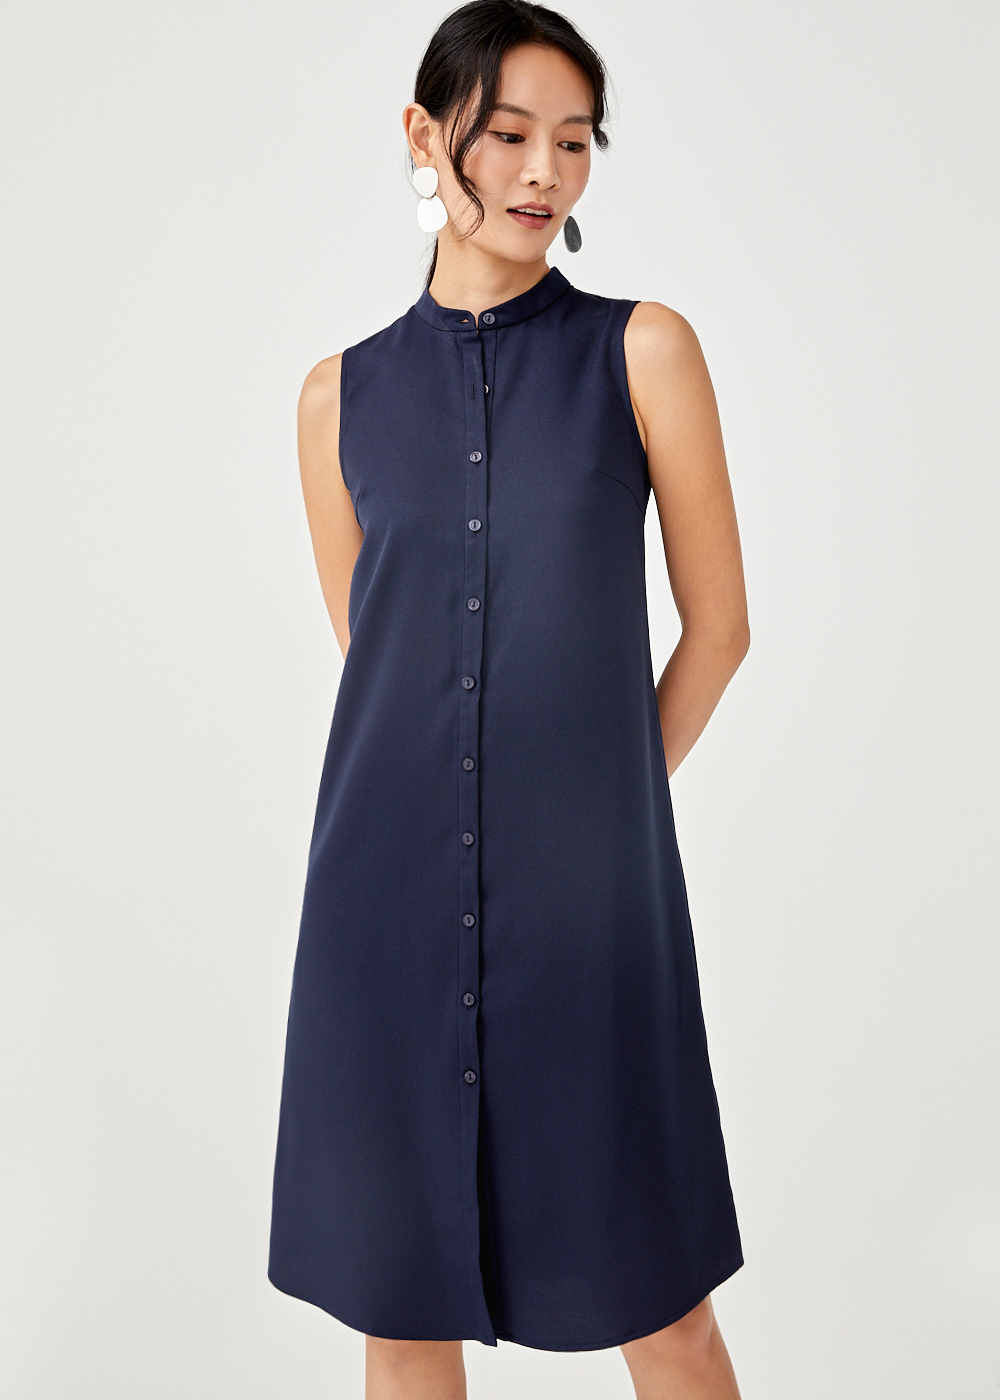 Kairi Button-down Shirt Dress